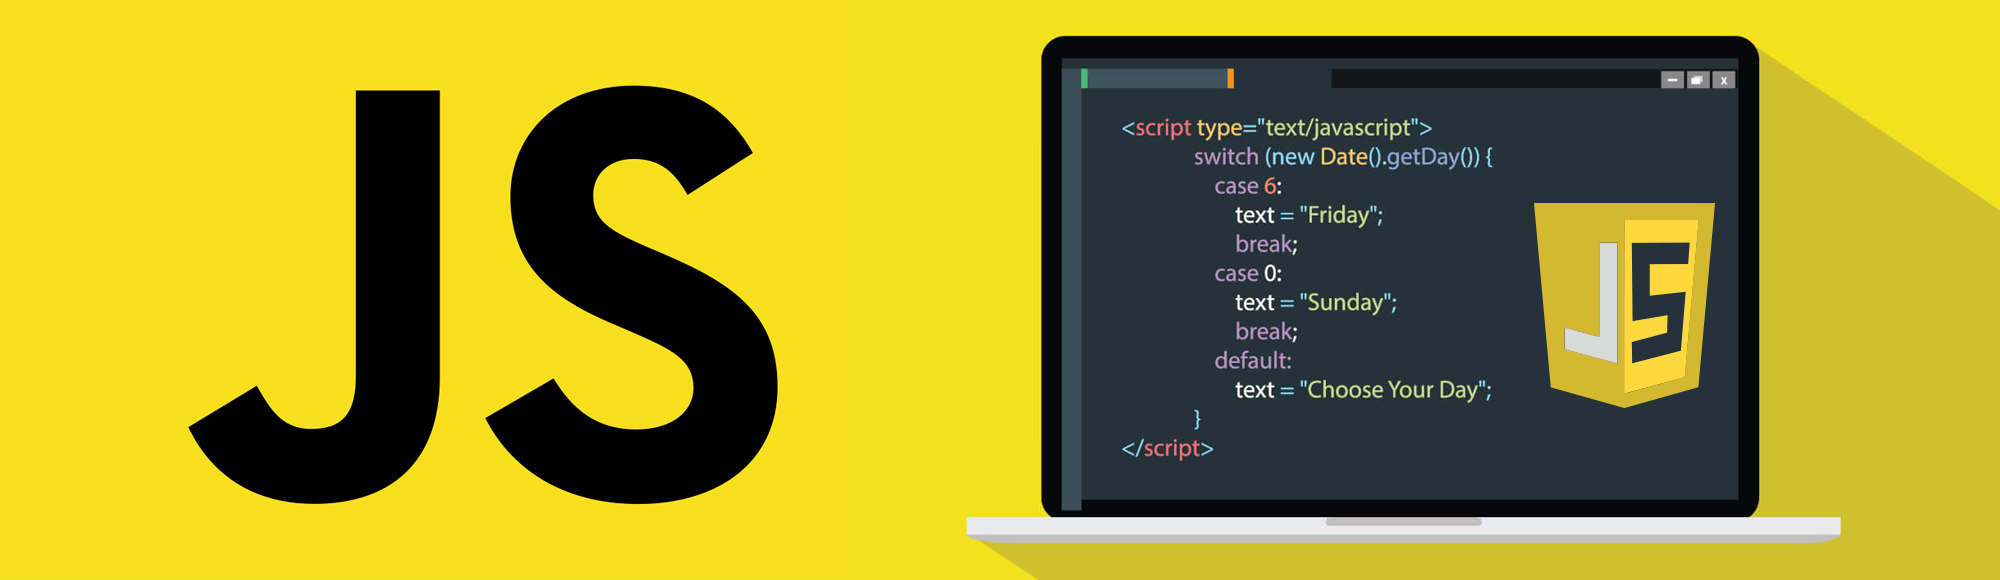 What & Where is Javascript Used for